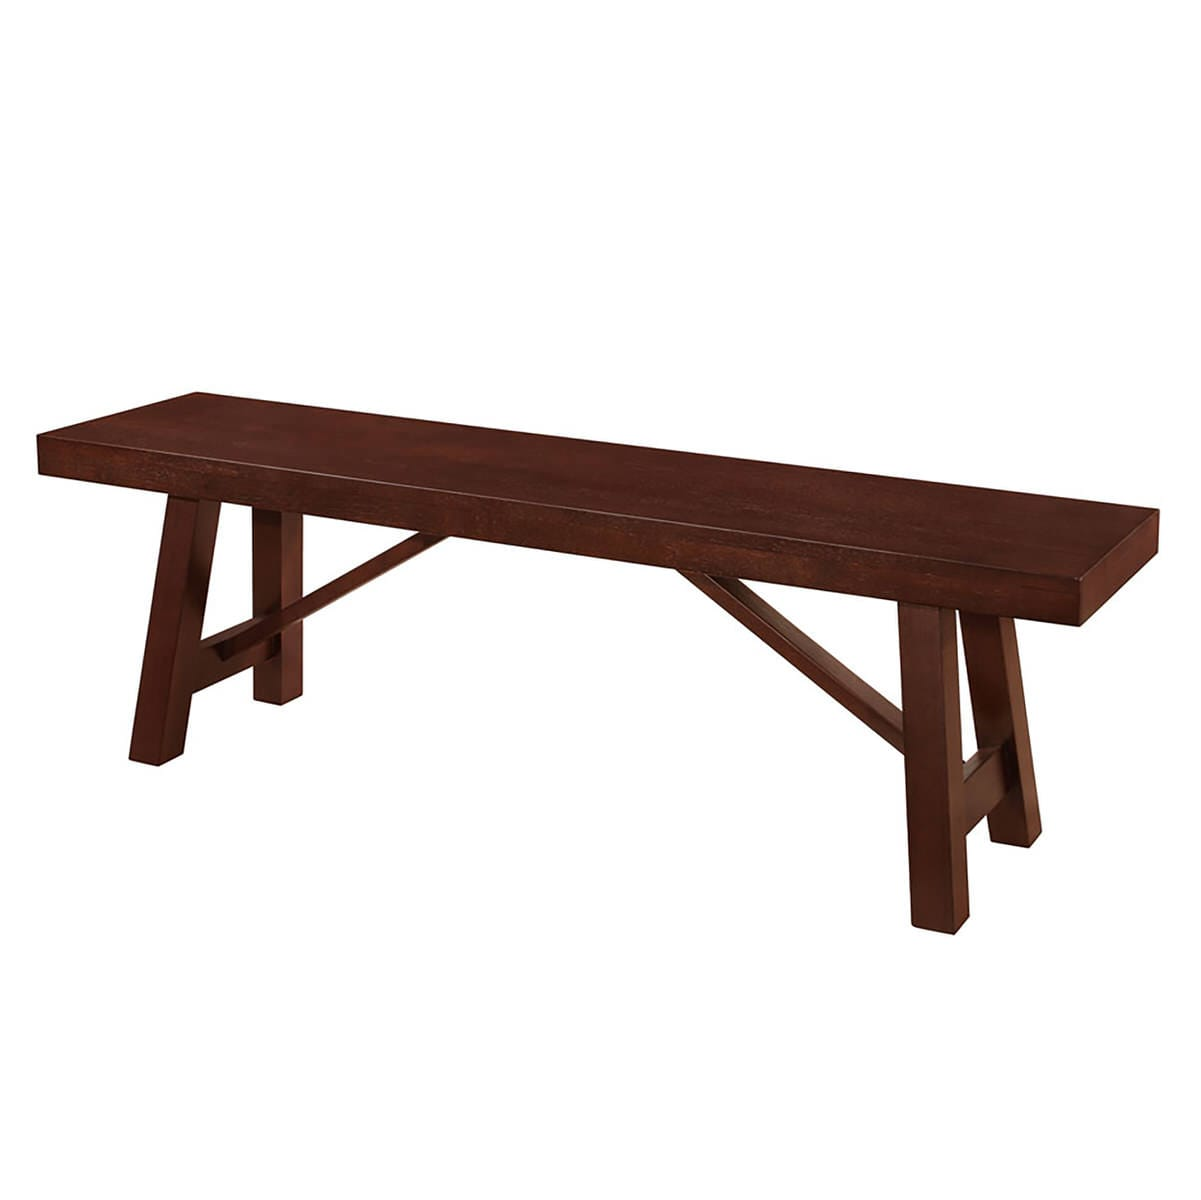 Terrific 60 Inch Solid Wood Trestle Dining Bench Espresso By Walker Edison Bralicious Painted Fabric Chair Ideas Braliciousco